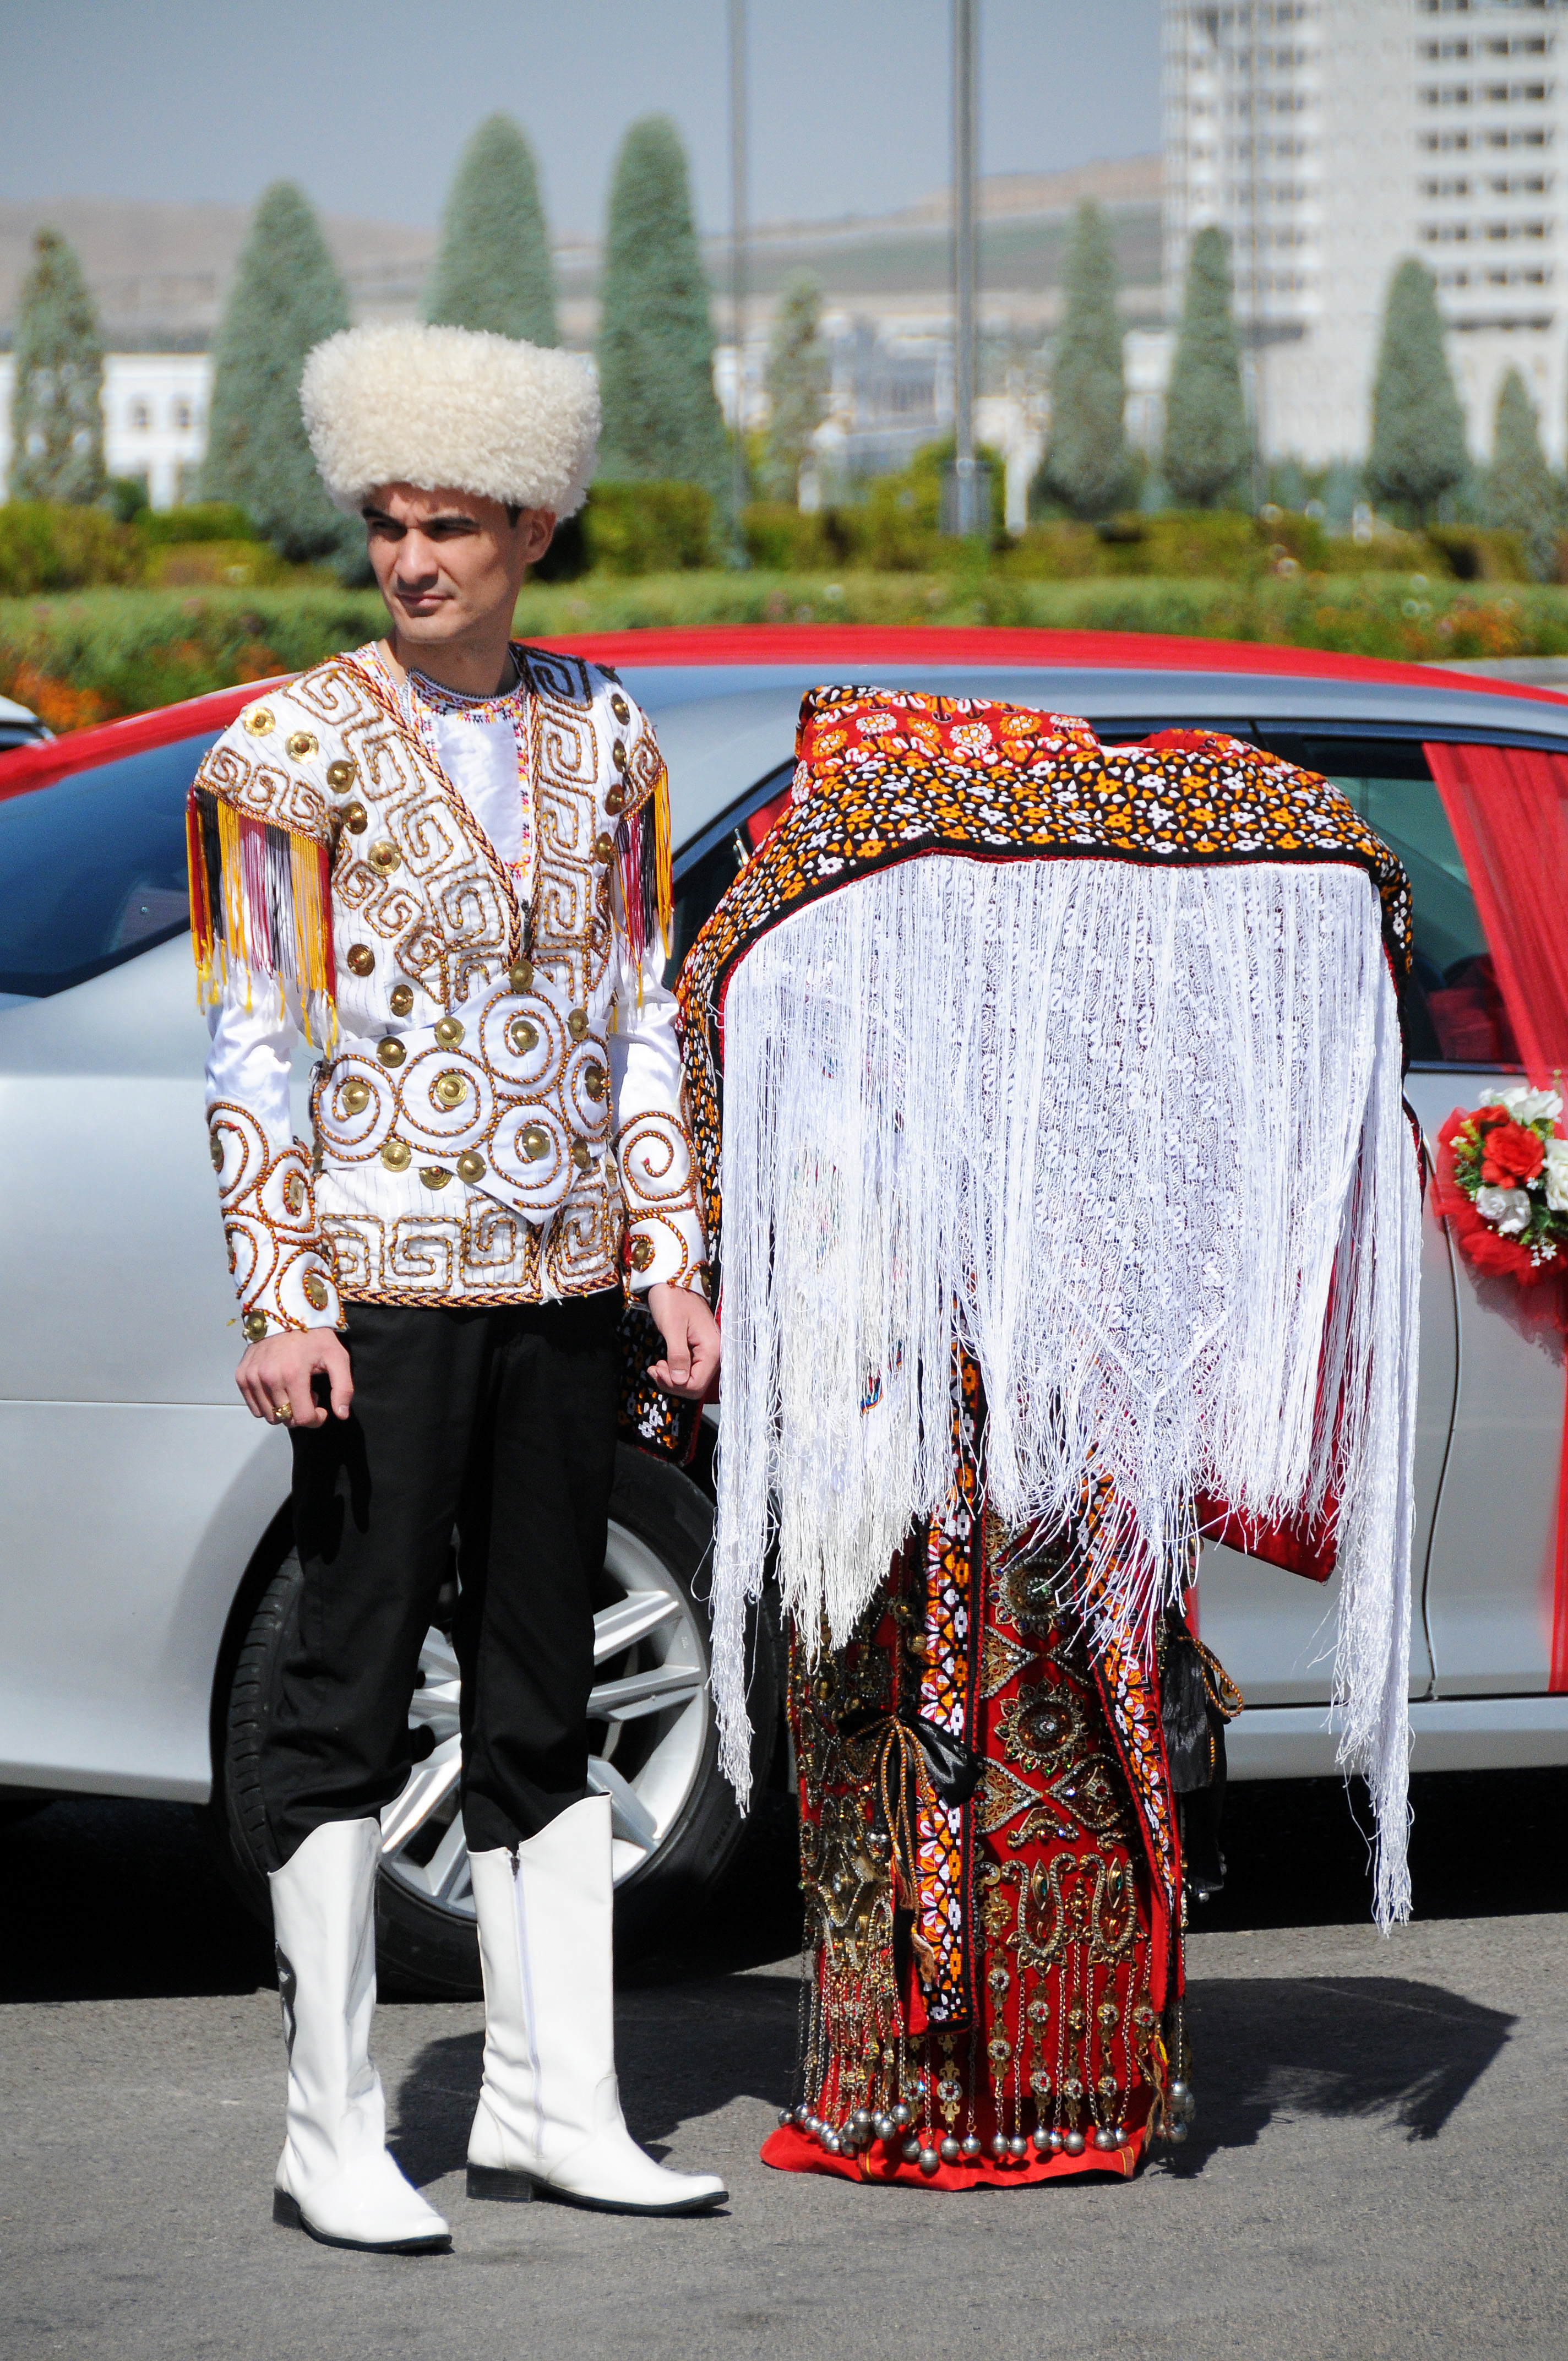 Anjci All Over | Odd Facts about Turkmenistan